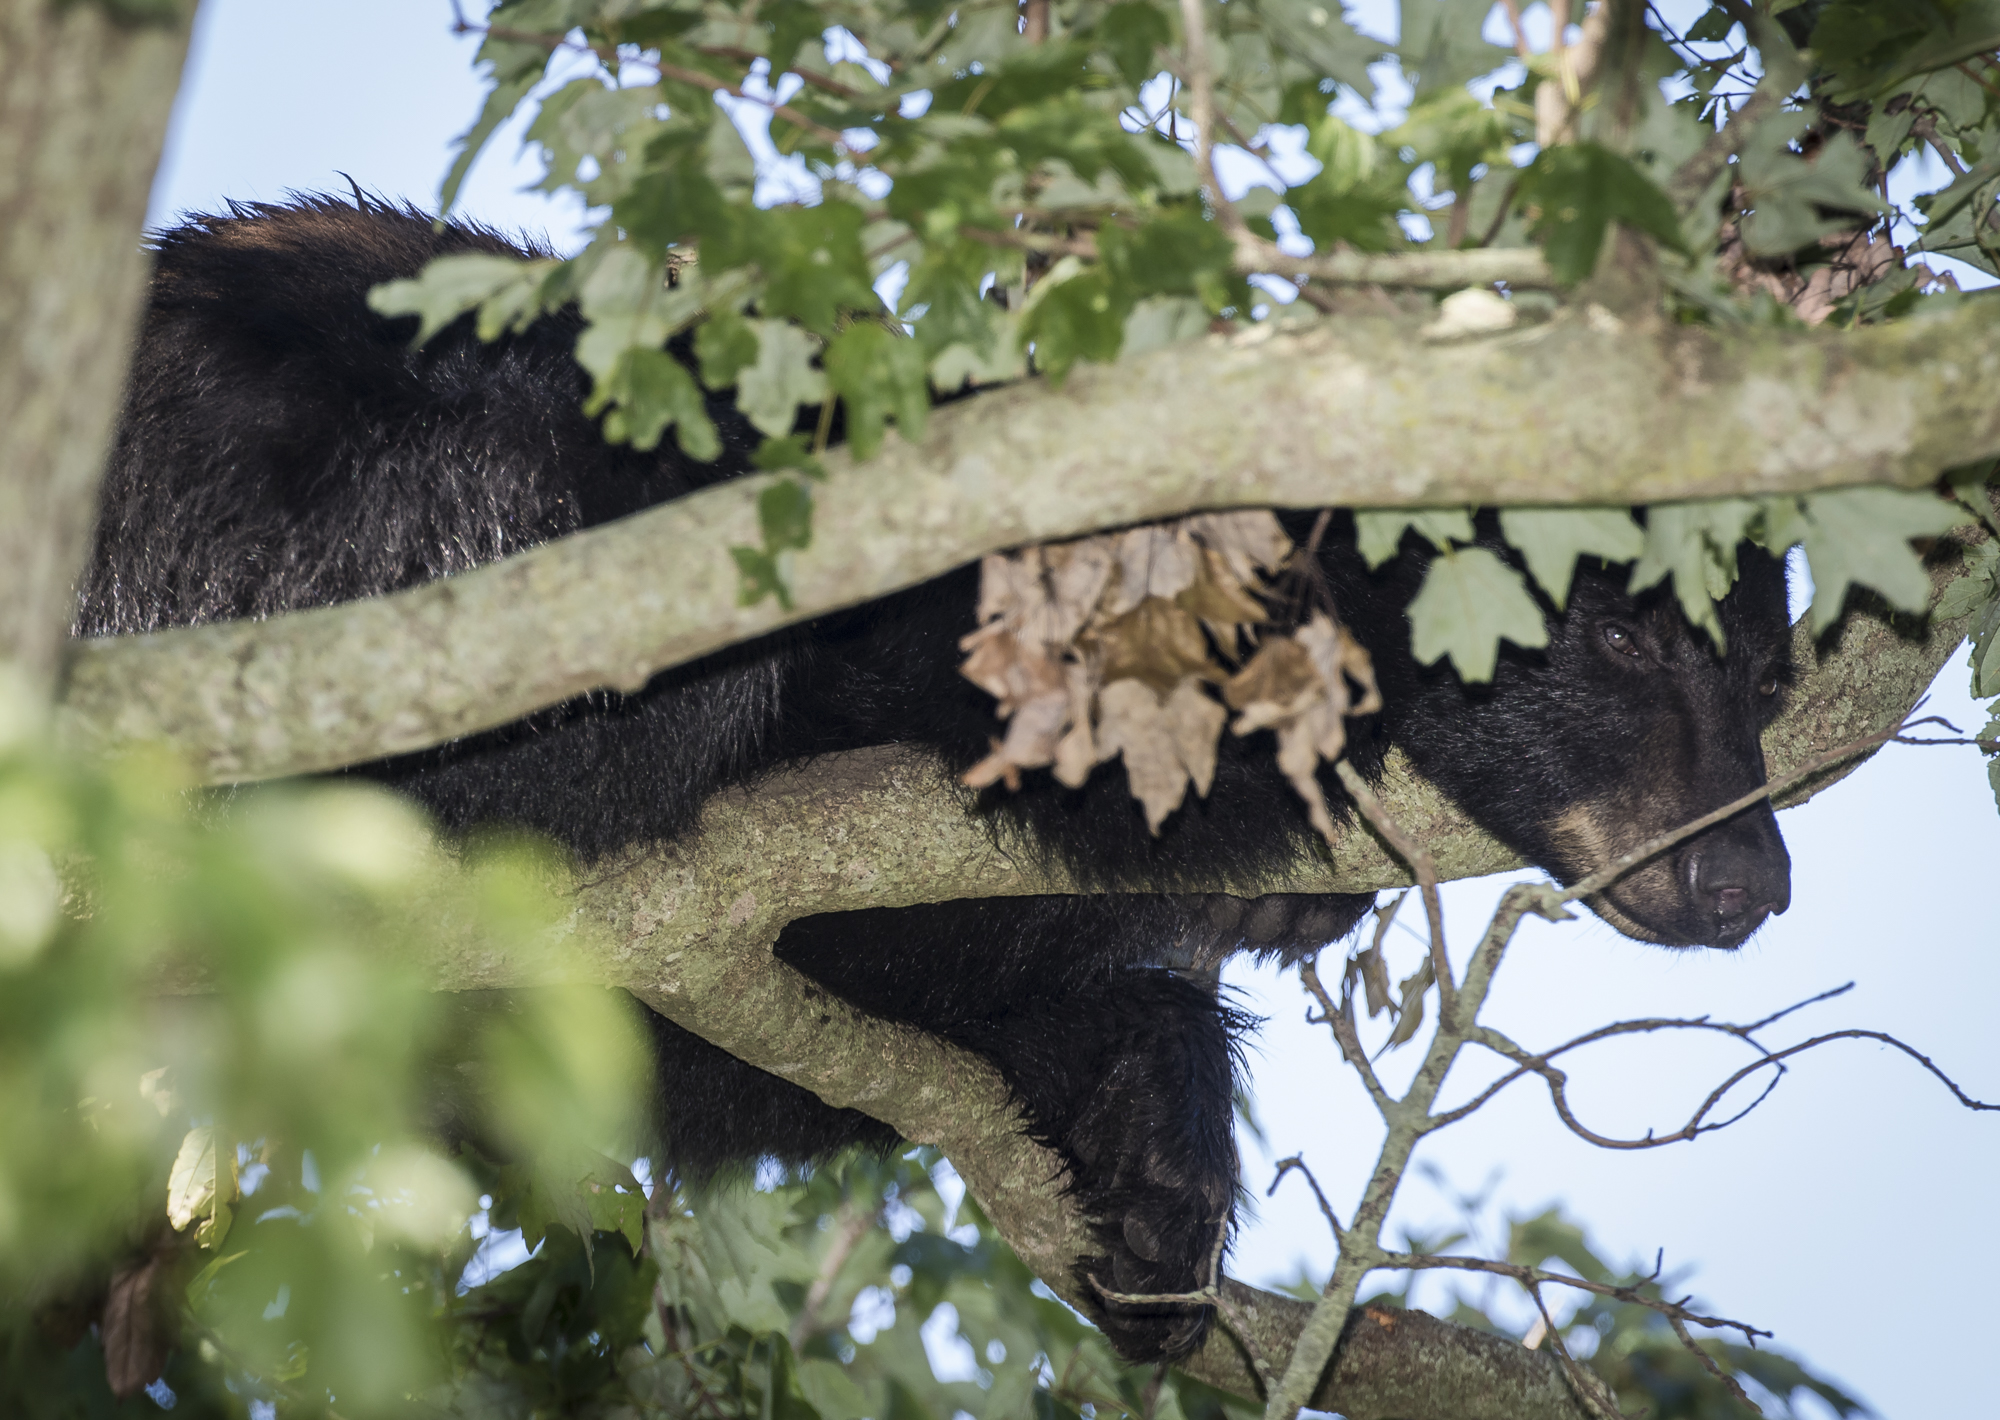 Young black bear chillin' in tree alongside road